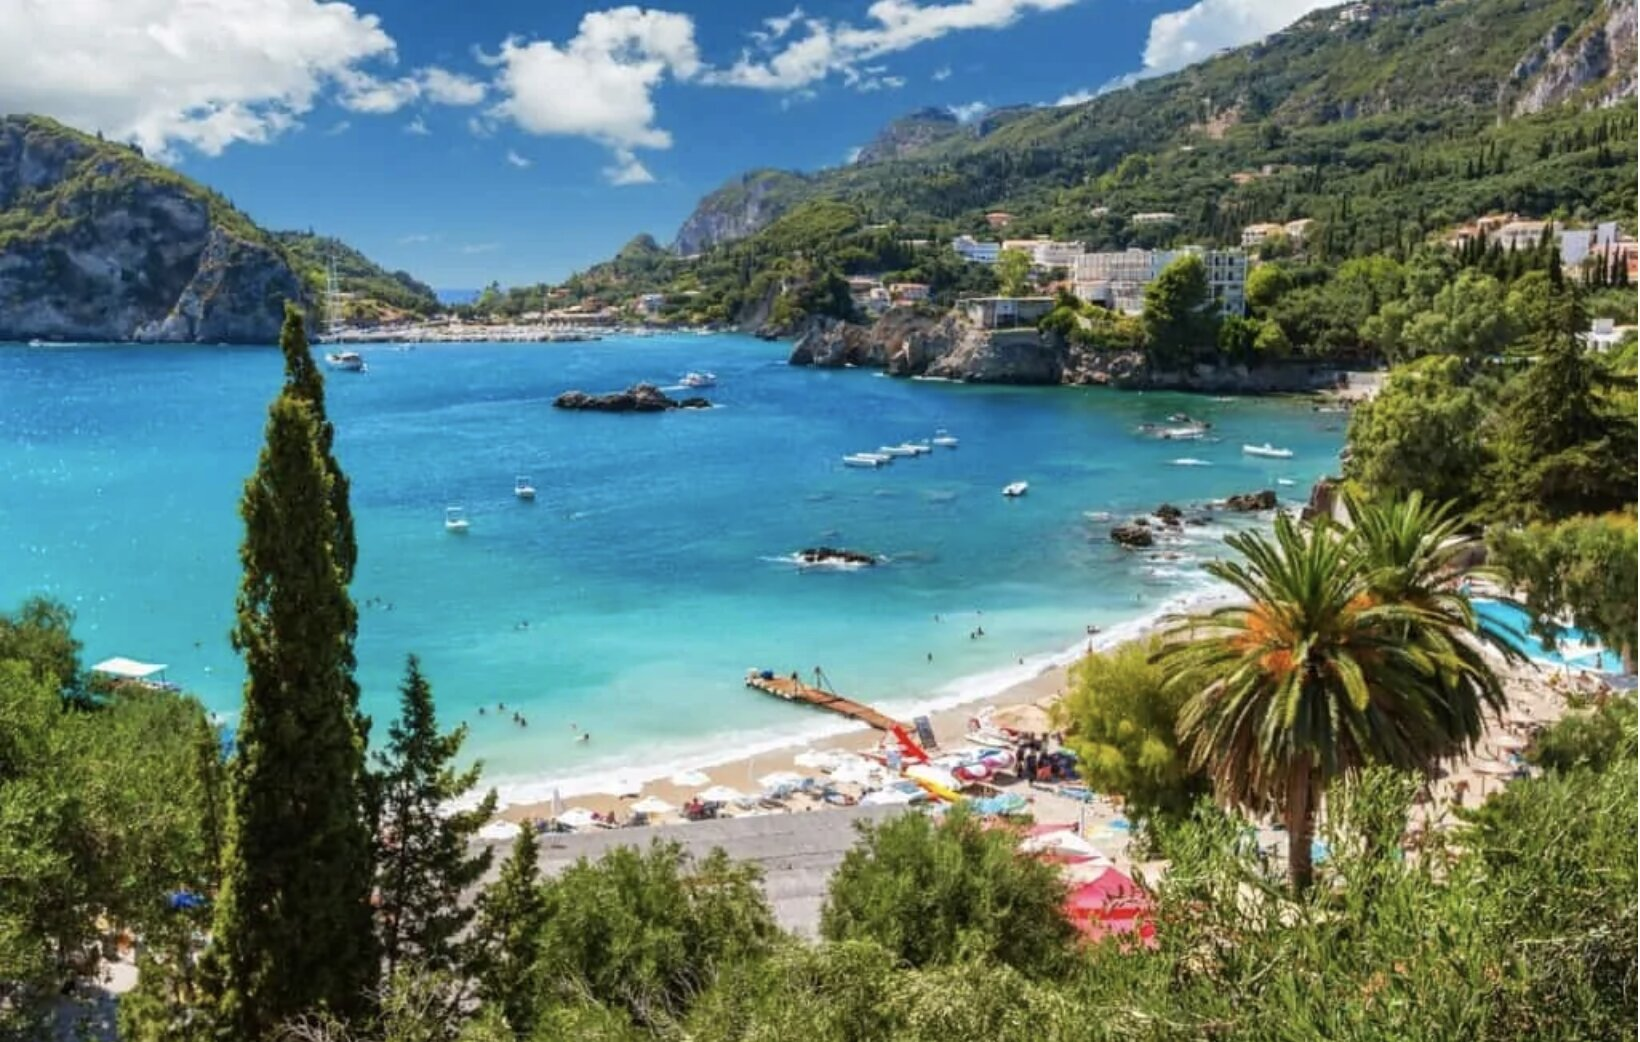 Greece is the top choice for Italians wanting to travel abroad